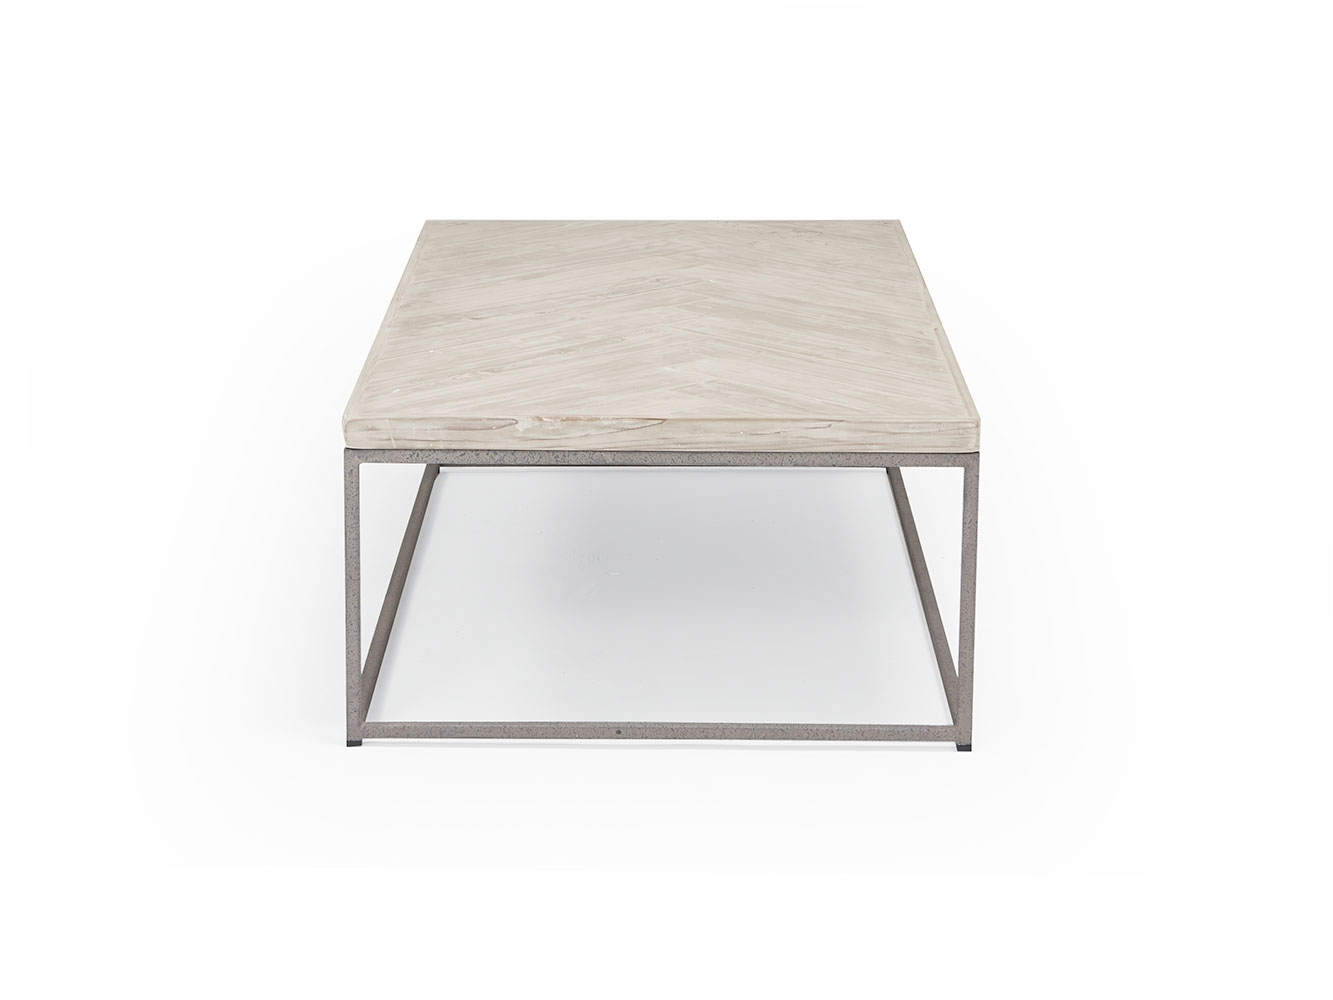 Parker Coffee Table | Parquet Coffee Table | Loaf Inside Parquet Coffee Tables (Photo 2 of 30)